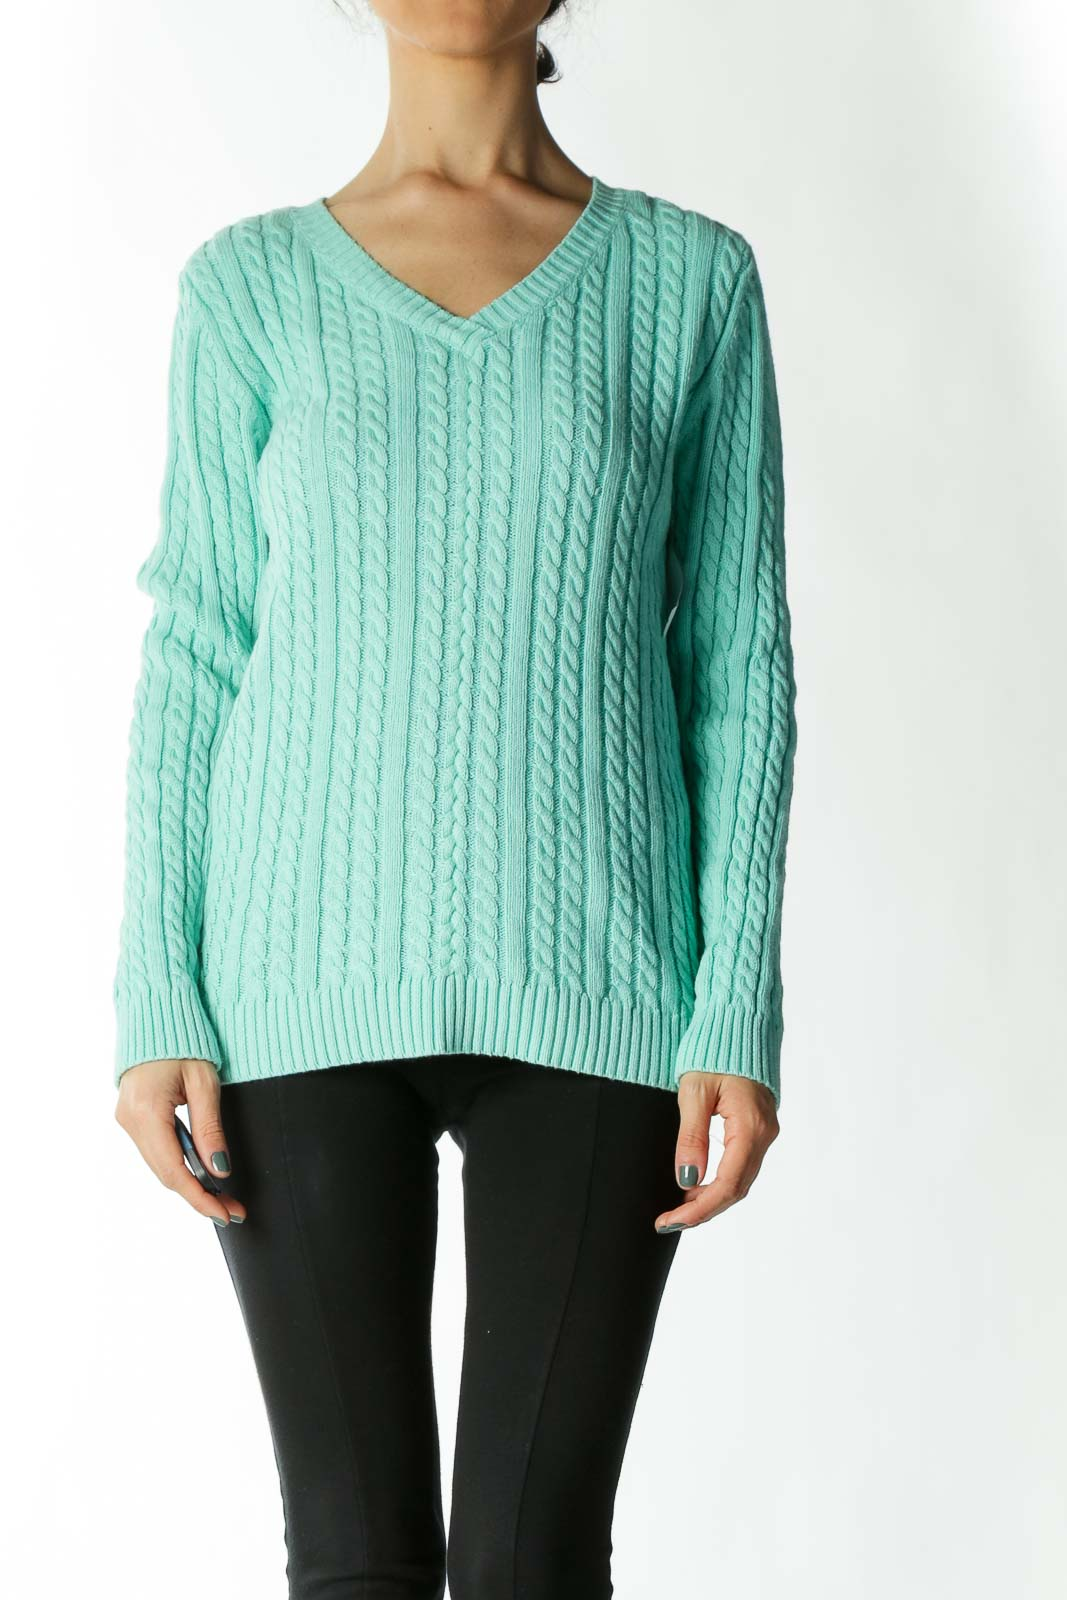 Mint Cable-Knit V-Neck Sweater